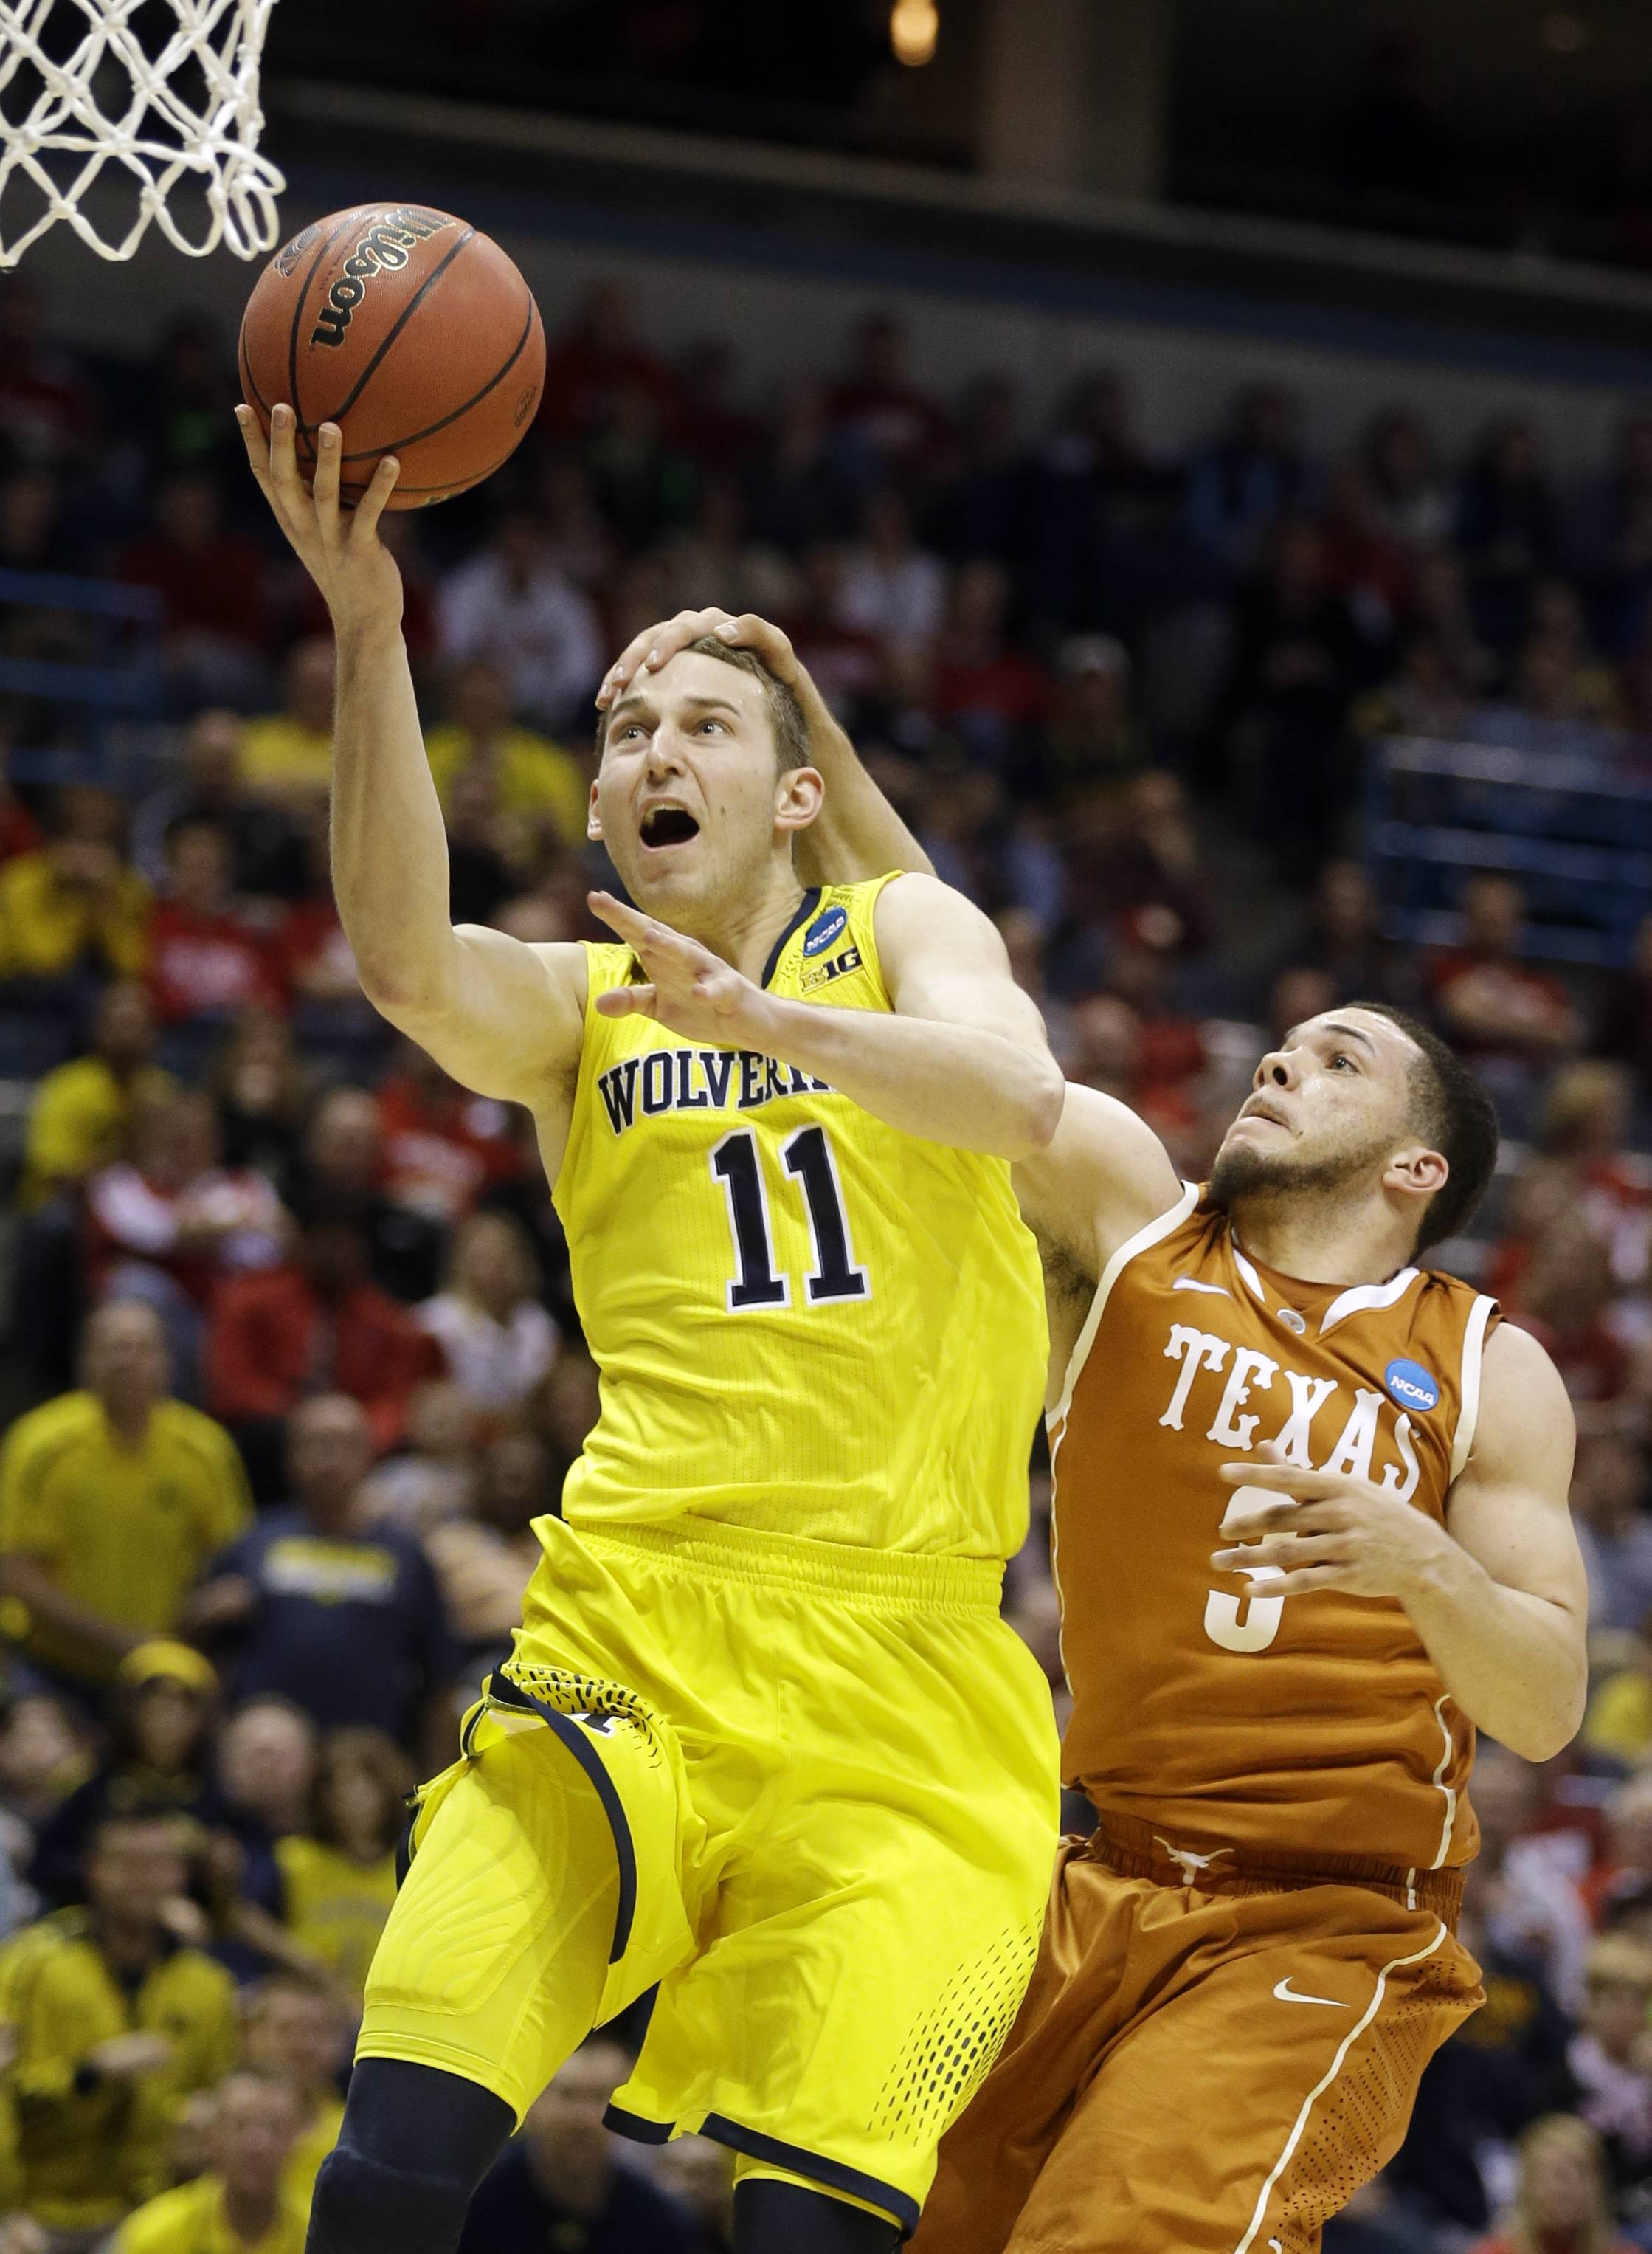 Michigan guard Nik Stauskas (11) is fouled by Texas guard Javan Felix (3) during a third-round game of the NCAA college basketball tournament Saturday in Milwaukee. Michigan beat Texas 79-65.